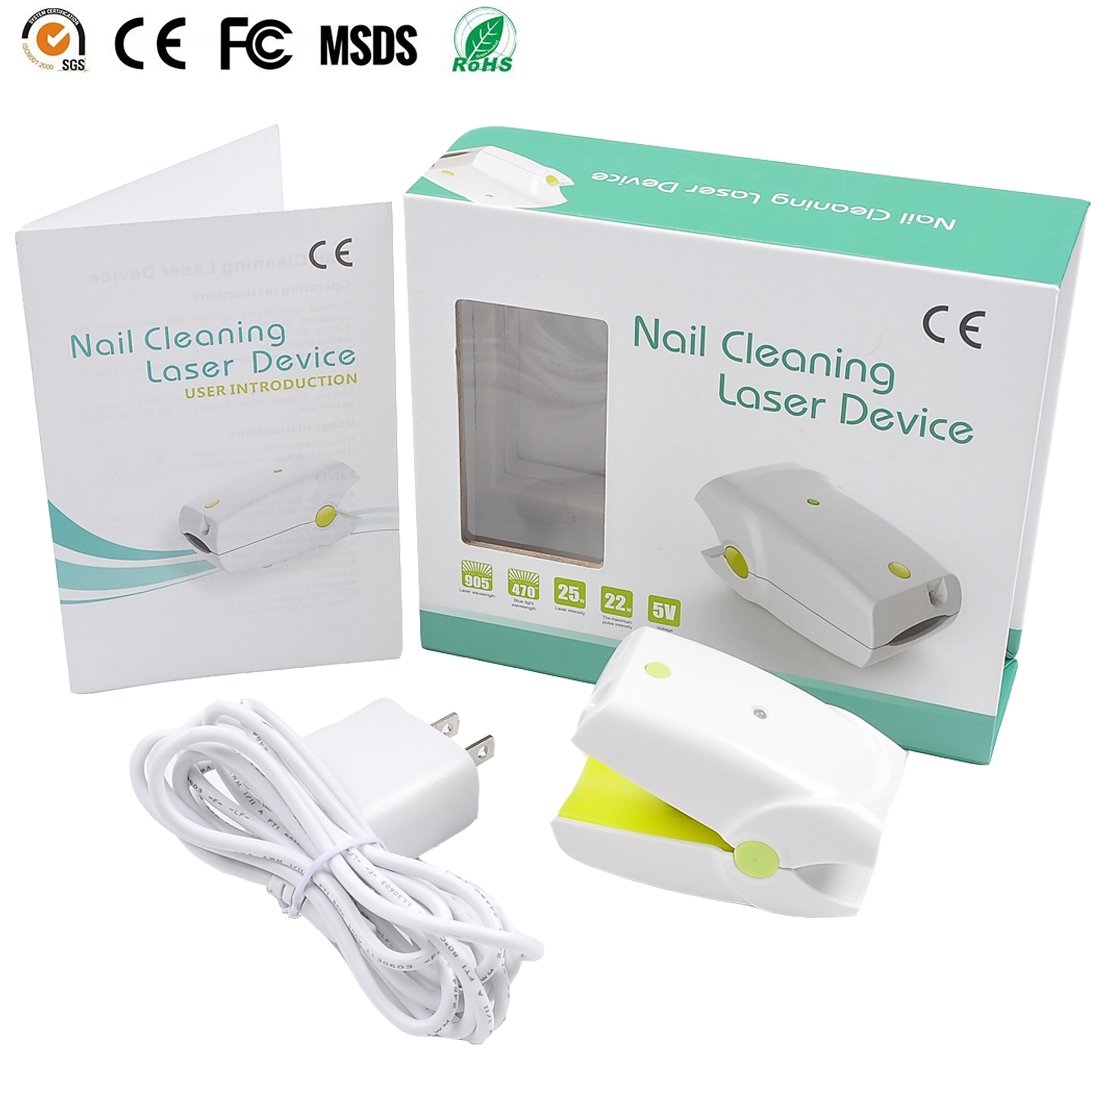 Nail Cleaning Laser Device Professional Safe, Quick and Painless Nail Fungus Treatment For Toe And Finger Nails To Use At-Home No Side Effects